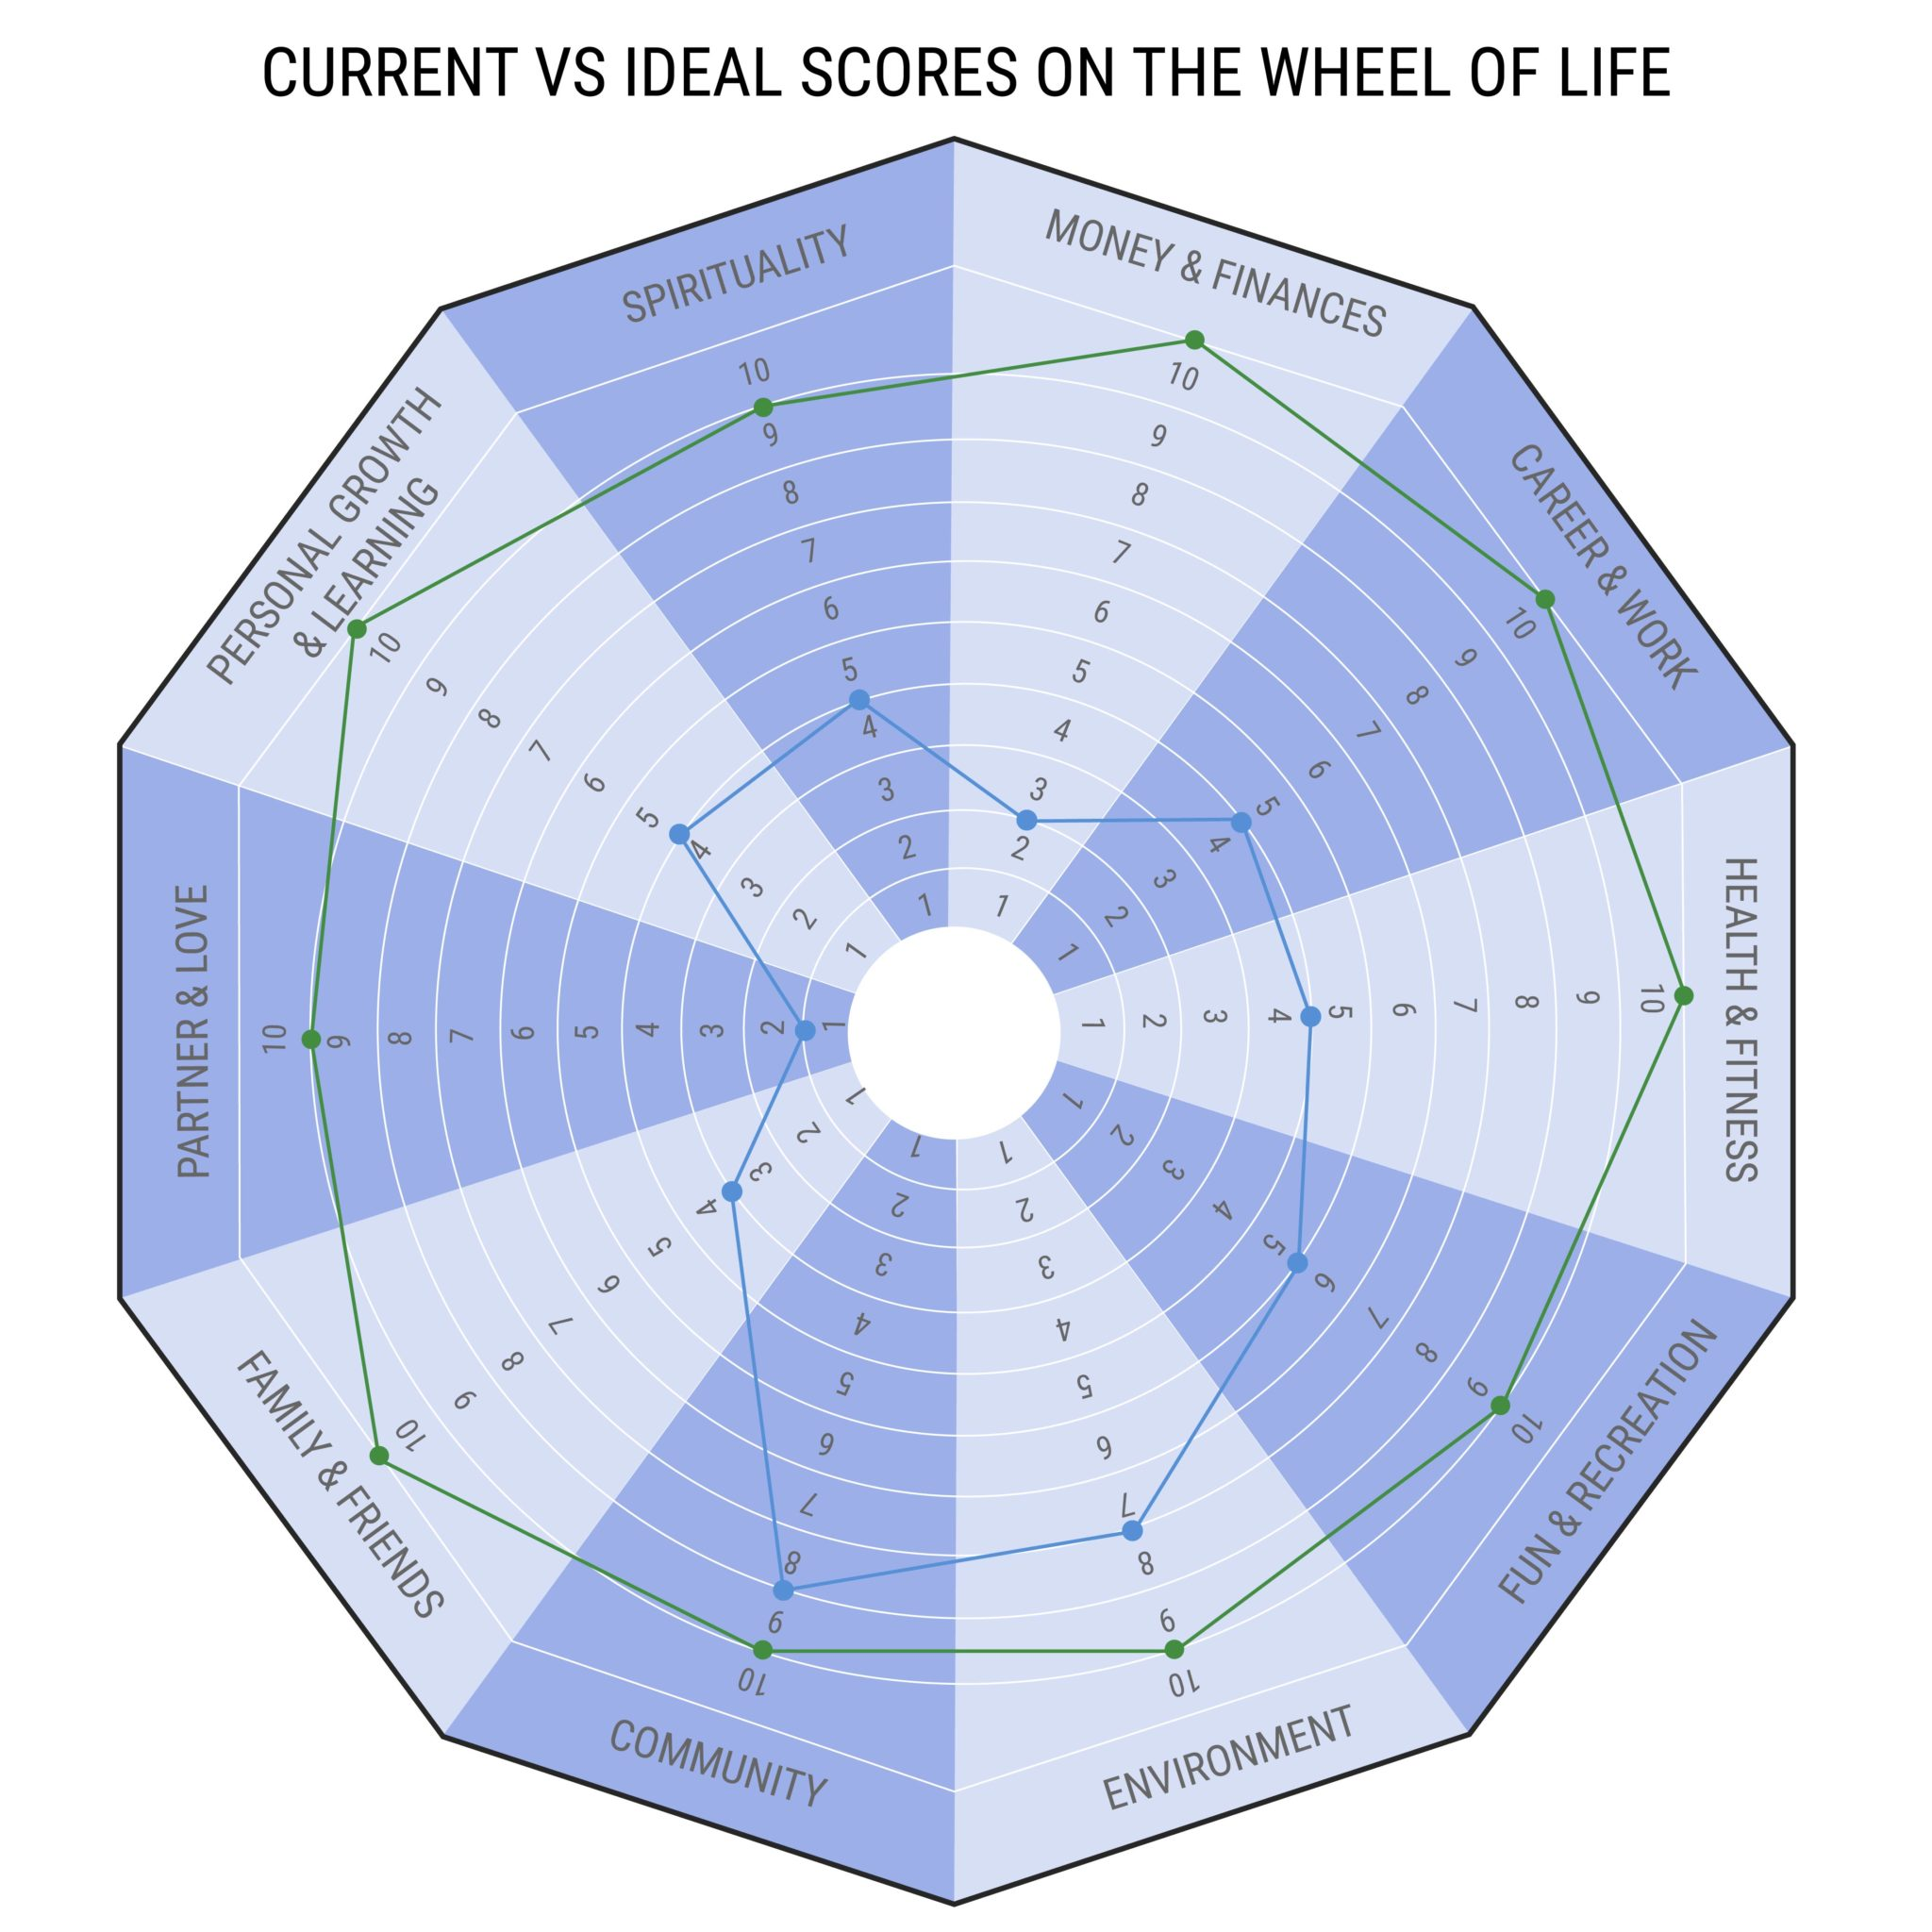 CURRENT VS IDEAL SCORES ON THE WHEEL OF LIFE